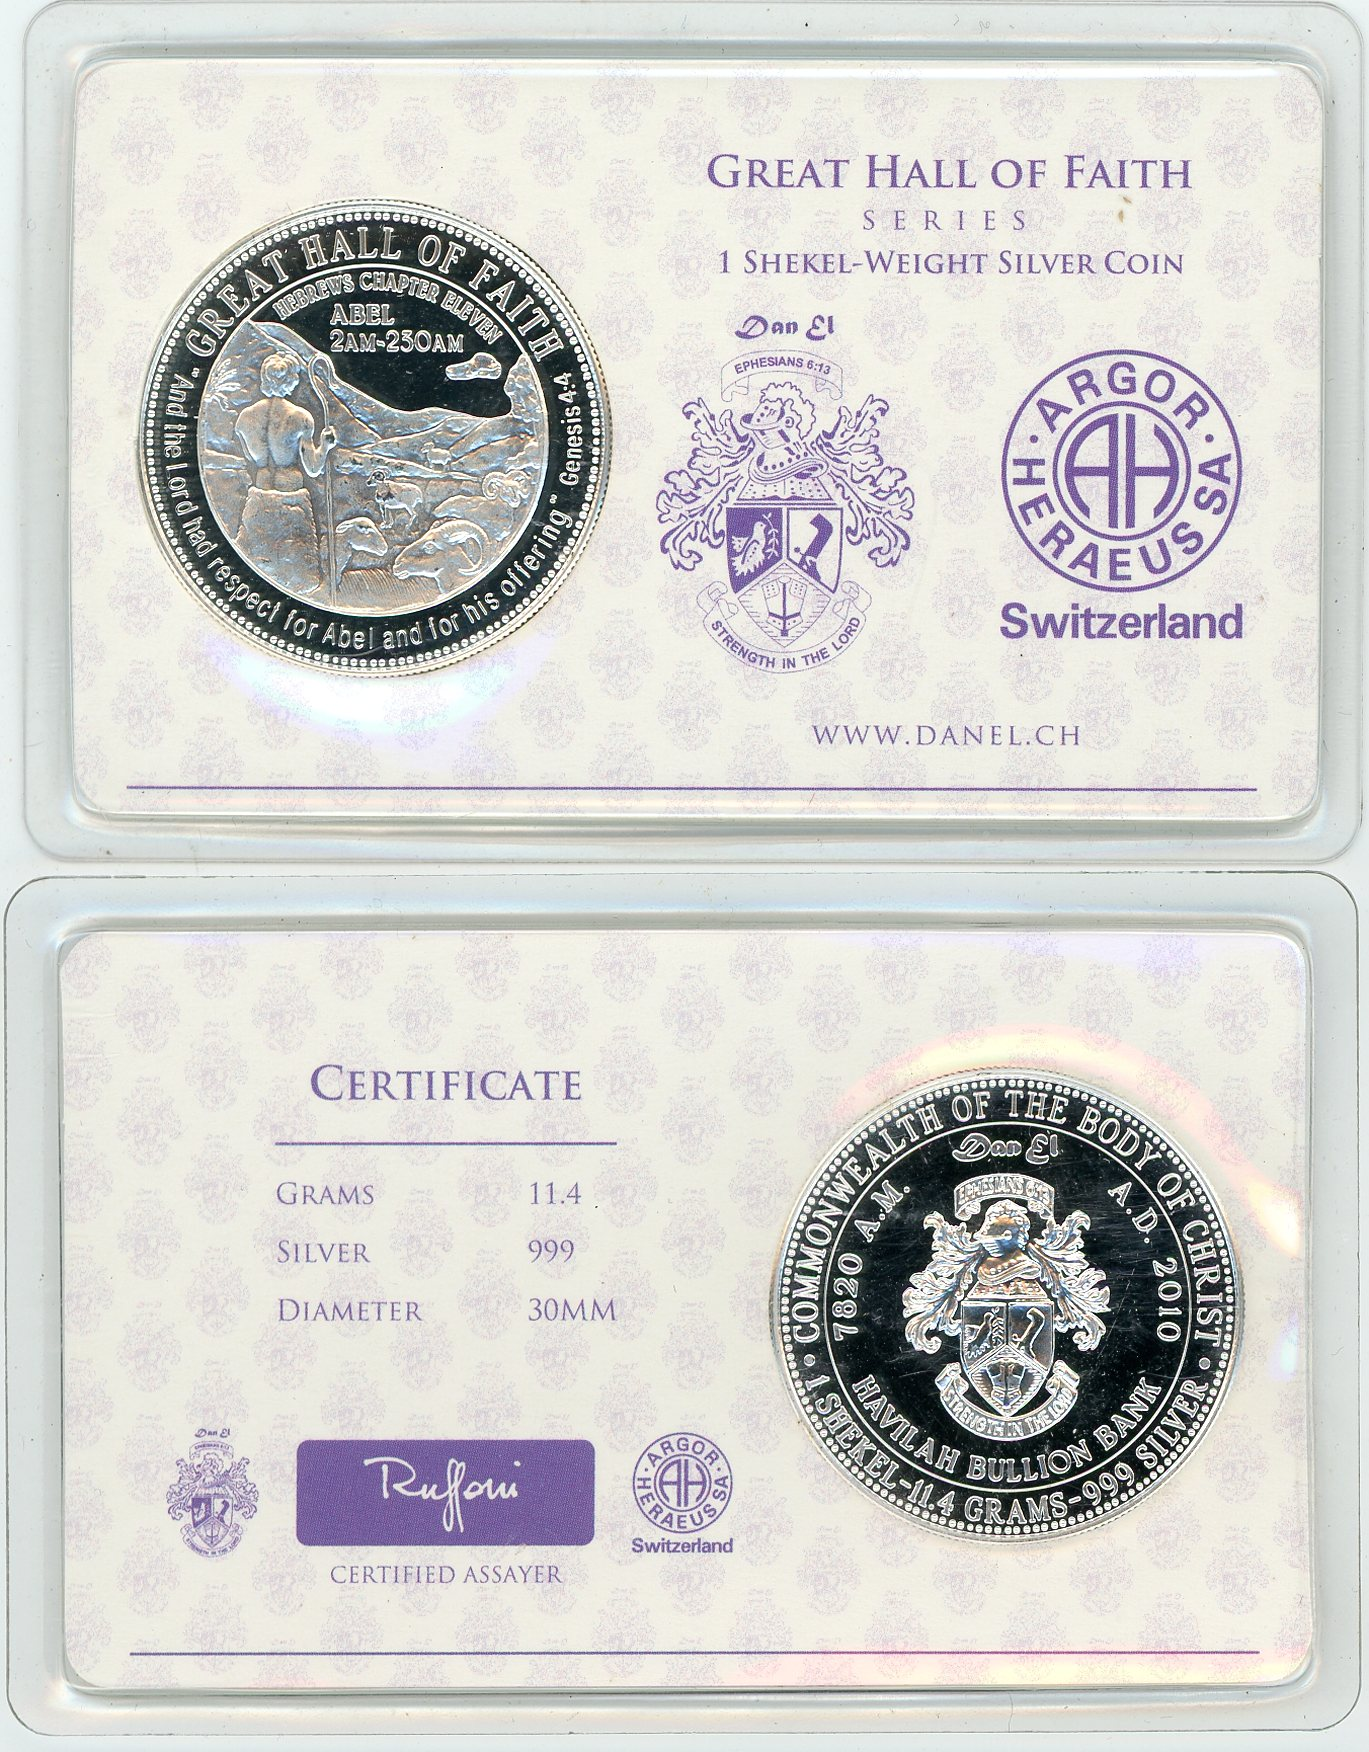 Thumbnail for One Shekel Silver weight 11.4gm .999 with Certificate